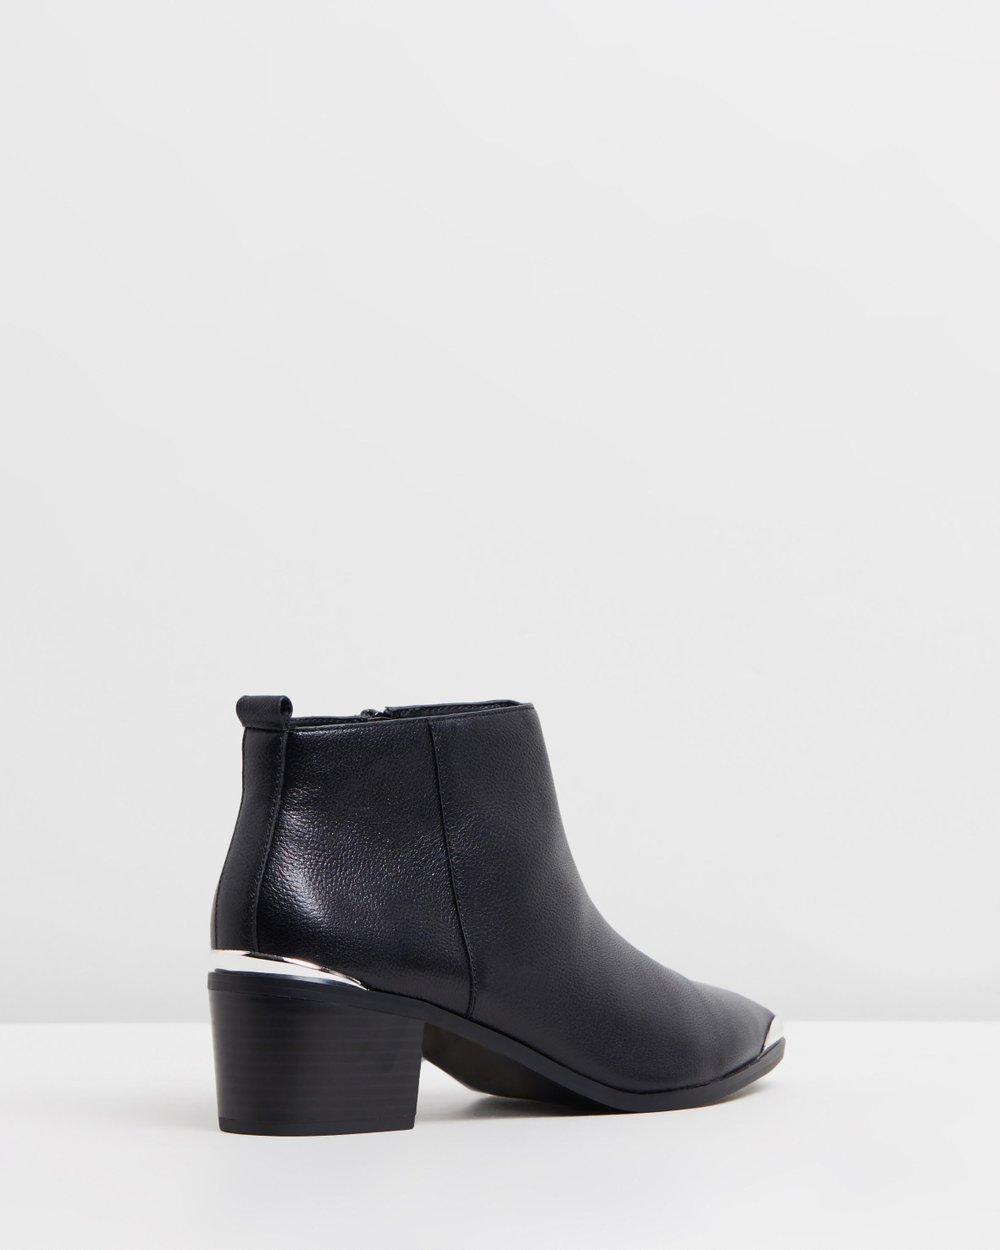 ebf68068547 Miles Low-Ankle Platform Boots by TOPSHOP Online